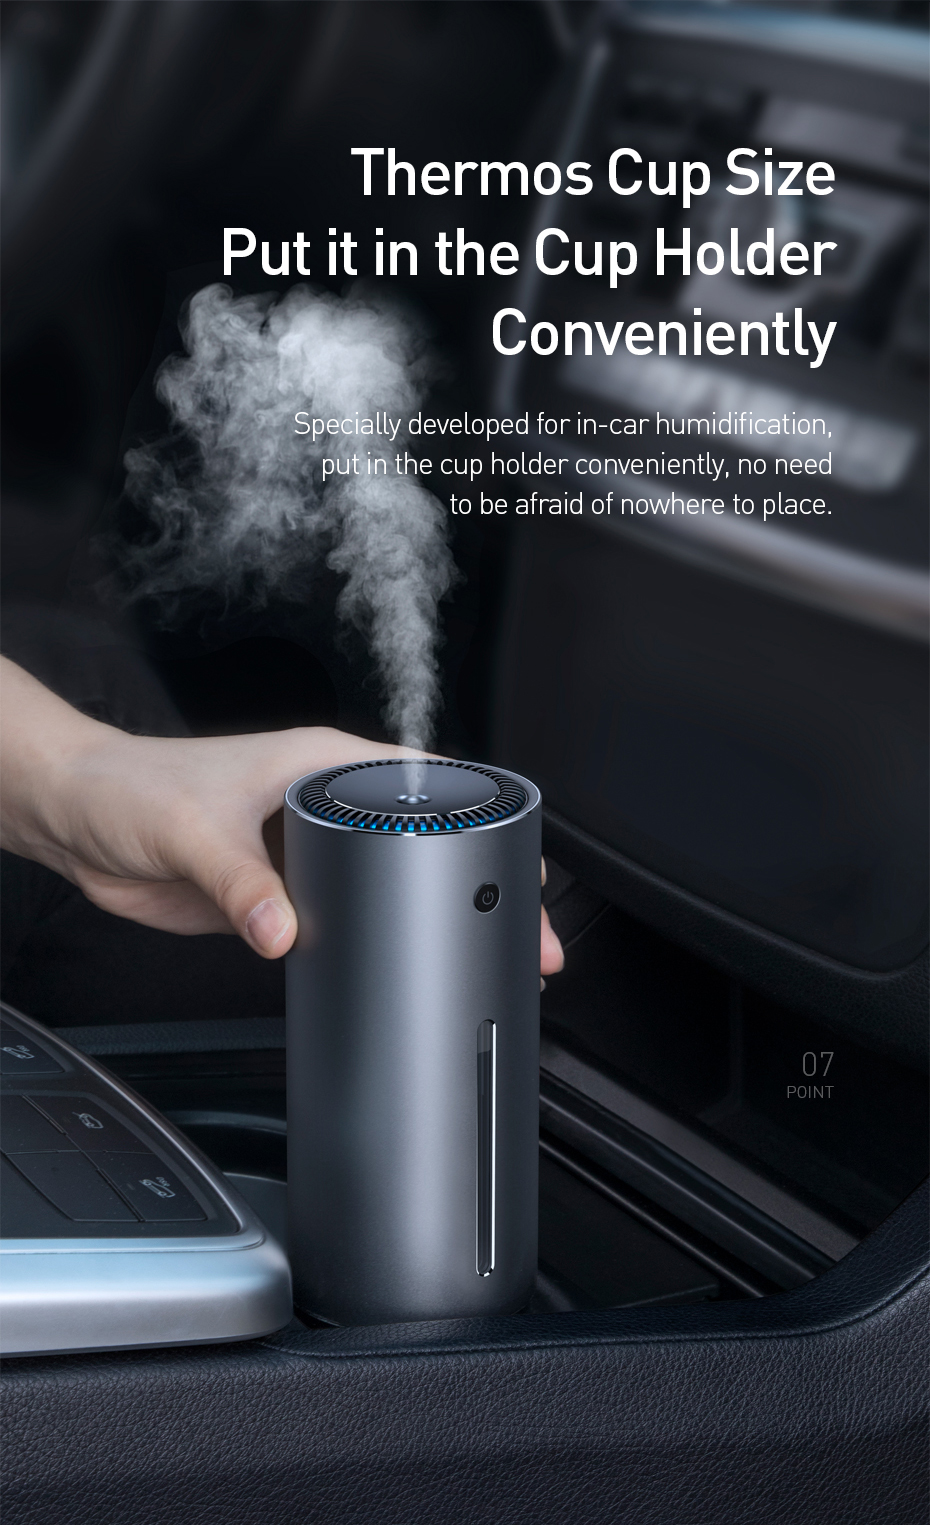 BASEUS Car Air Purifier with Essential Oil Aroma Diffuser and USB for Home and Office Air Purification 9